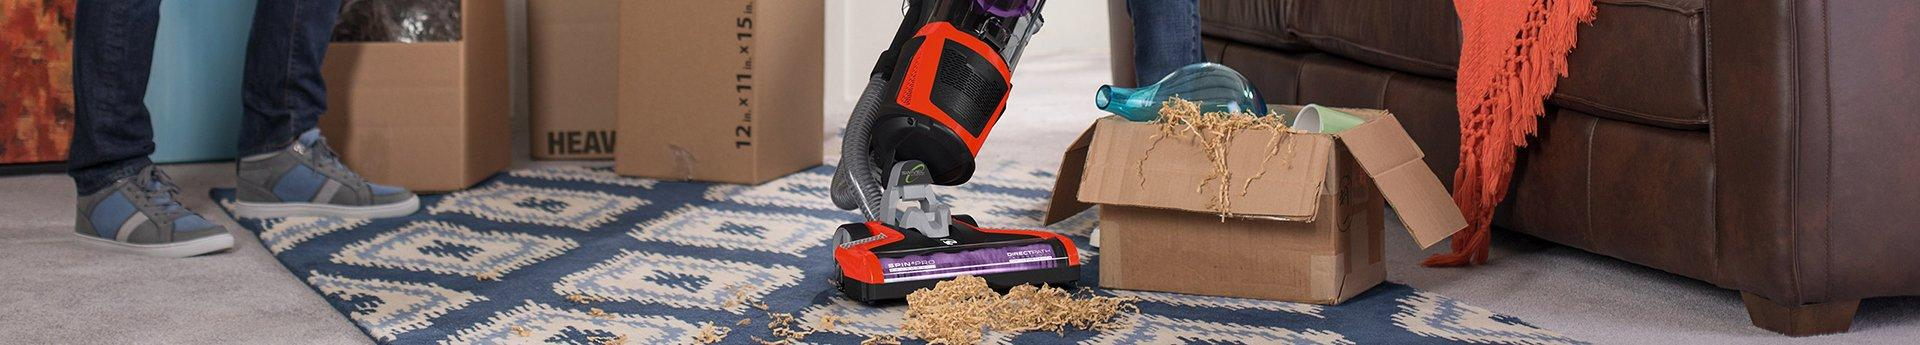 Dirt-Devil-Razor-Pet-Upright-Vacuum-with-Turbo-Tool-Damaged-Box-UD70355BDM thumbnail 5